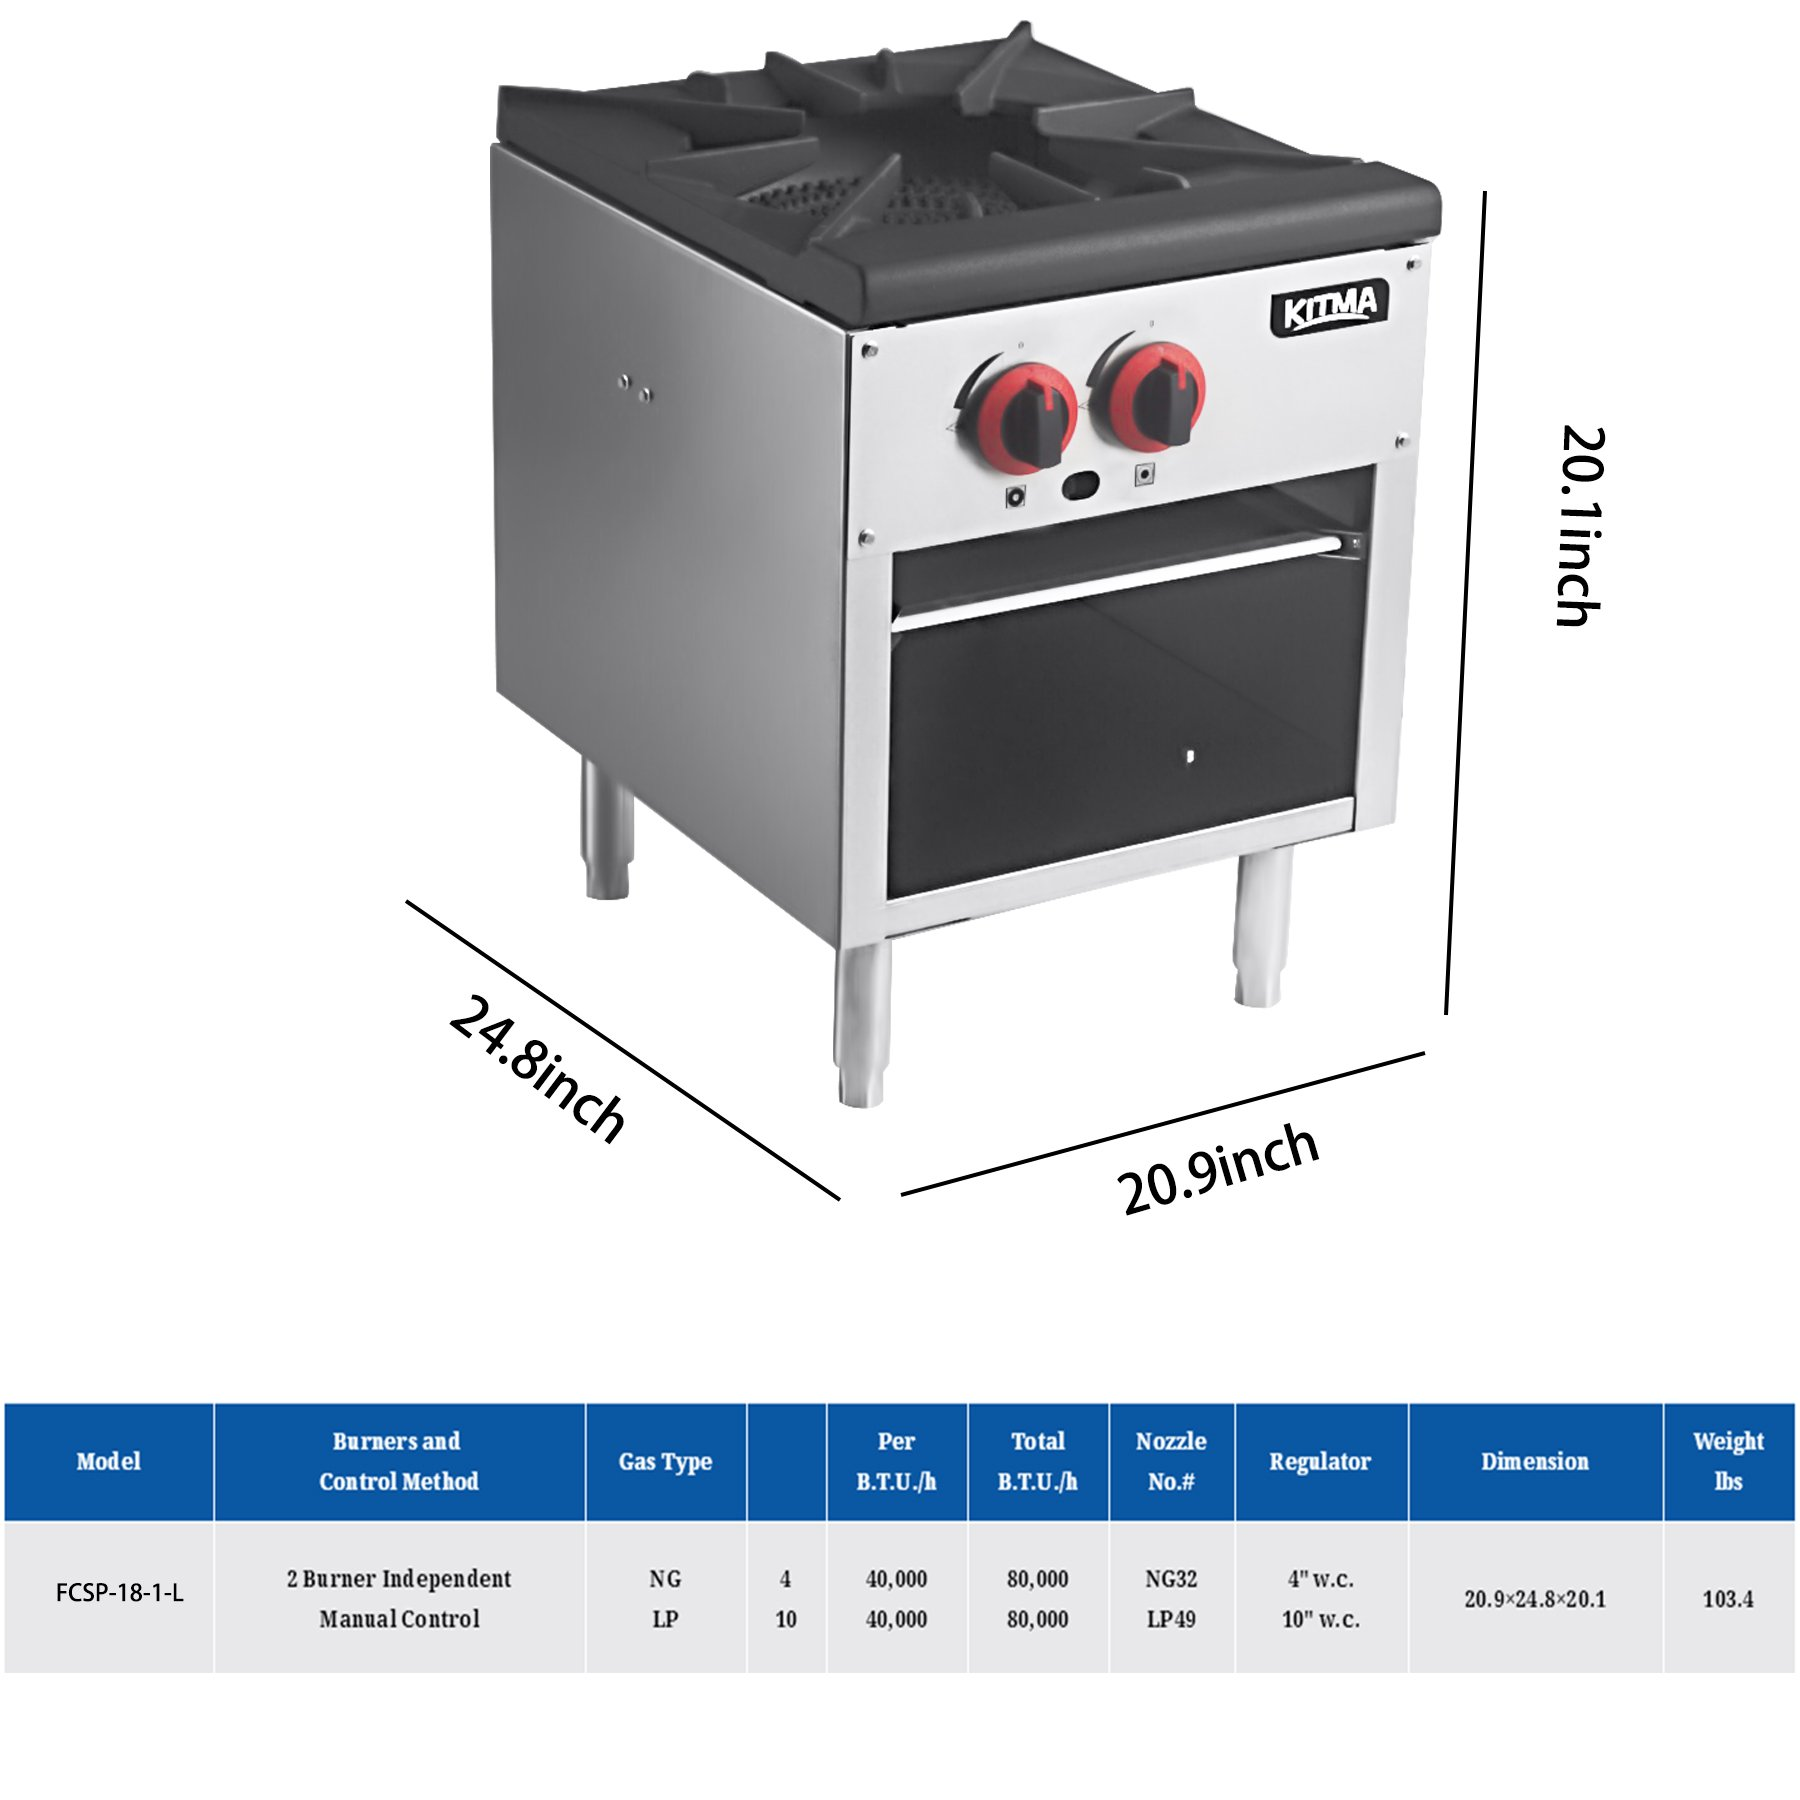 18 Inches Single Stock Pot Stove - KITMA Natural Gas Countertop Stock Pot Range with 2 Manual Controls - Restaurant Equipment for Soups by Kitma (Image #2)